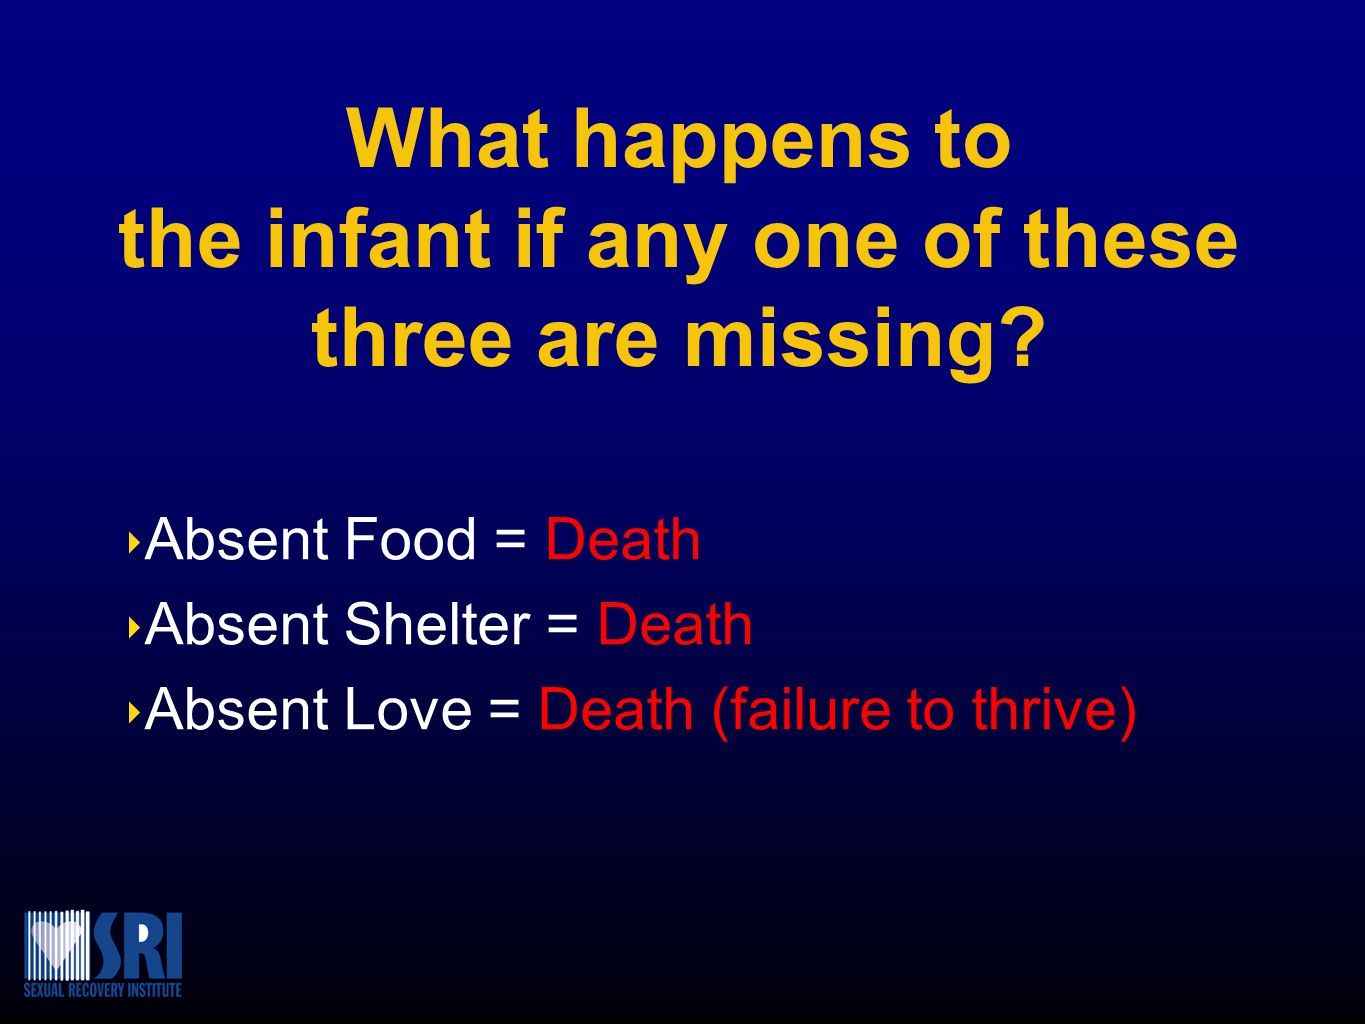 What happens to the infant if any one of these three are missing